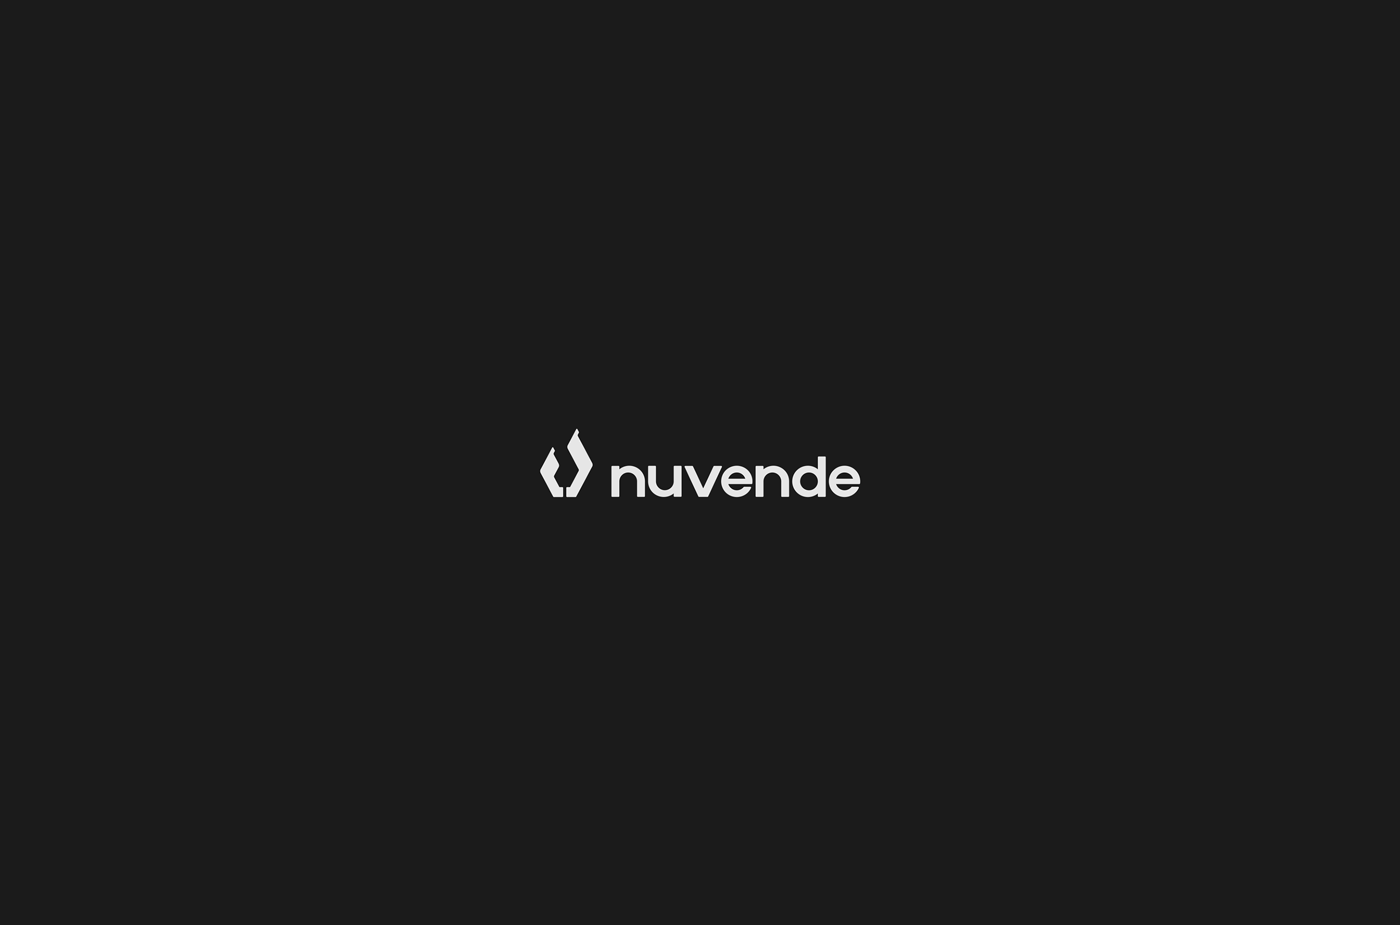 Nuvende.png